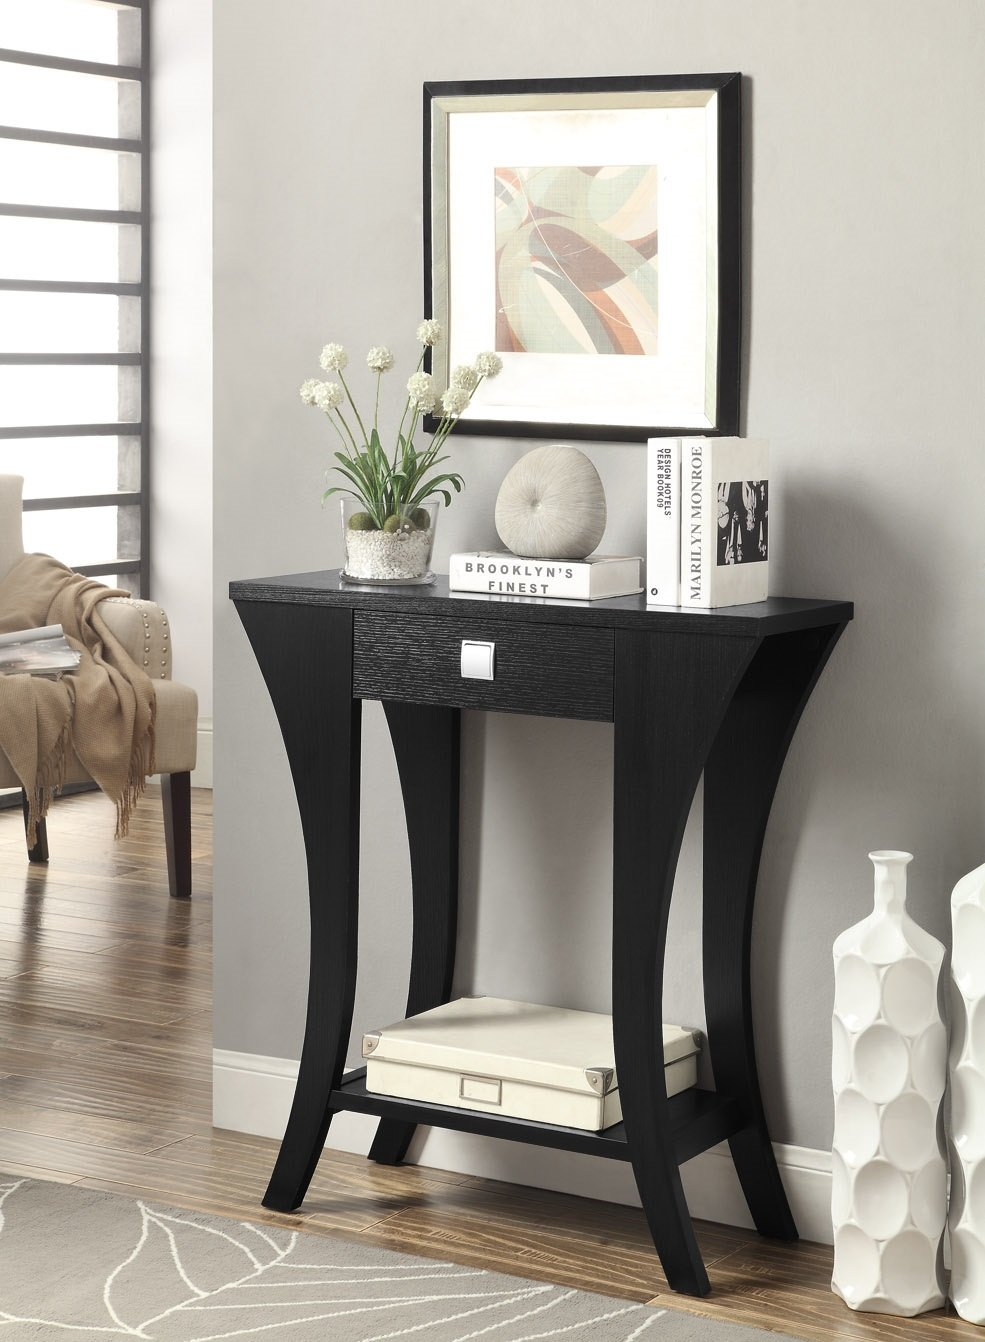 Amazon black finish console sofa entry table with drawer by amazon black finish console sofa entry table with drawer by ehomeproducts kitchen dining geotapseo Choice Image